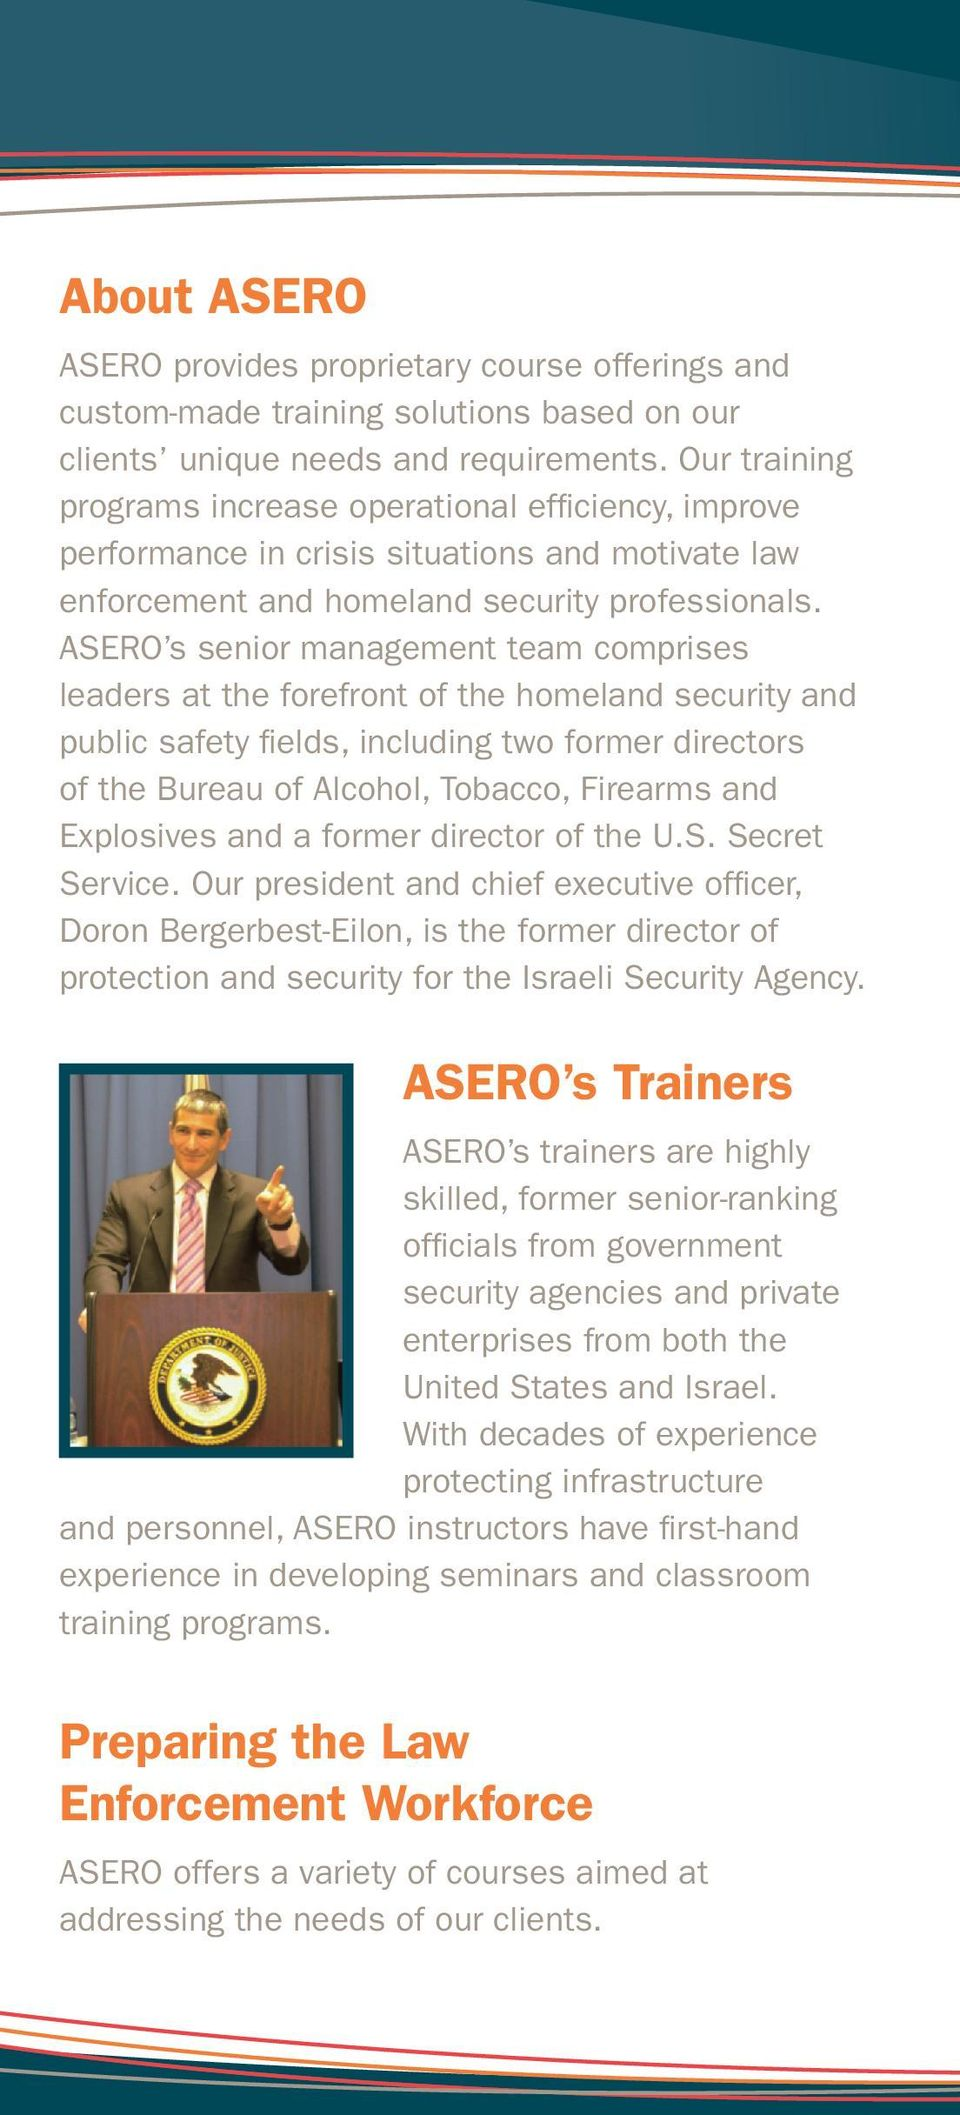 ASERO s senior management team comprises leaders at the forefront of the homeland security and public safety fields, including two former directors of the Bureau of Alcohol, Tobacco, Firearms and